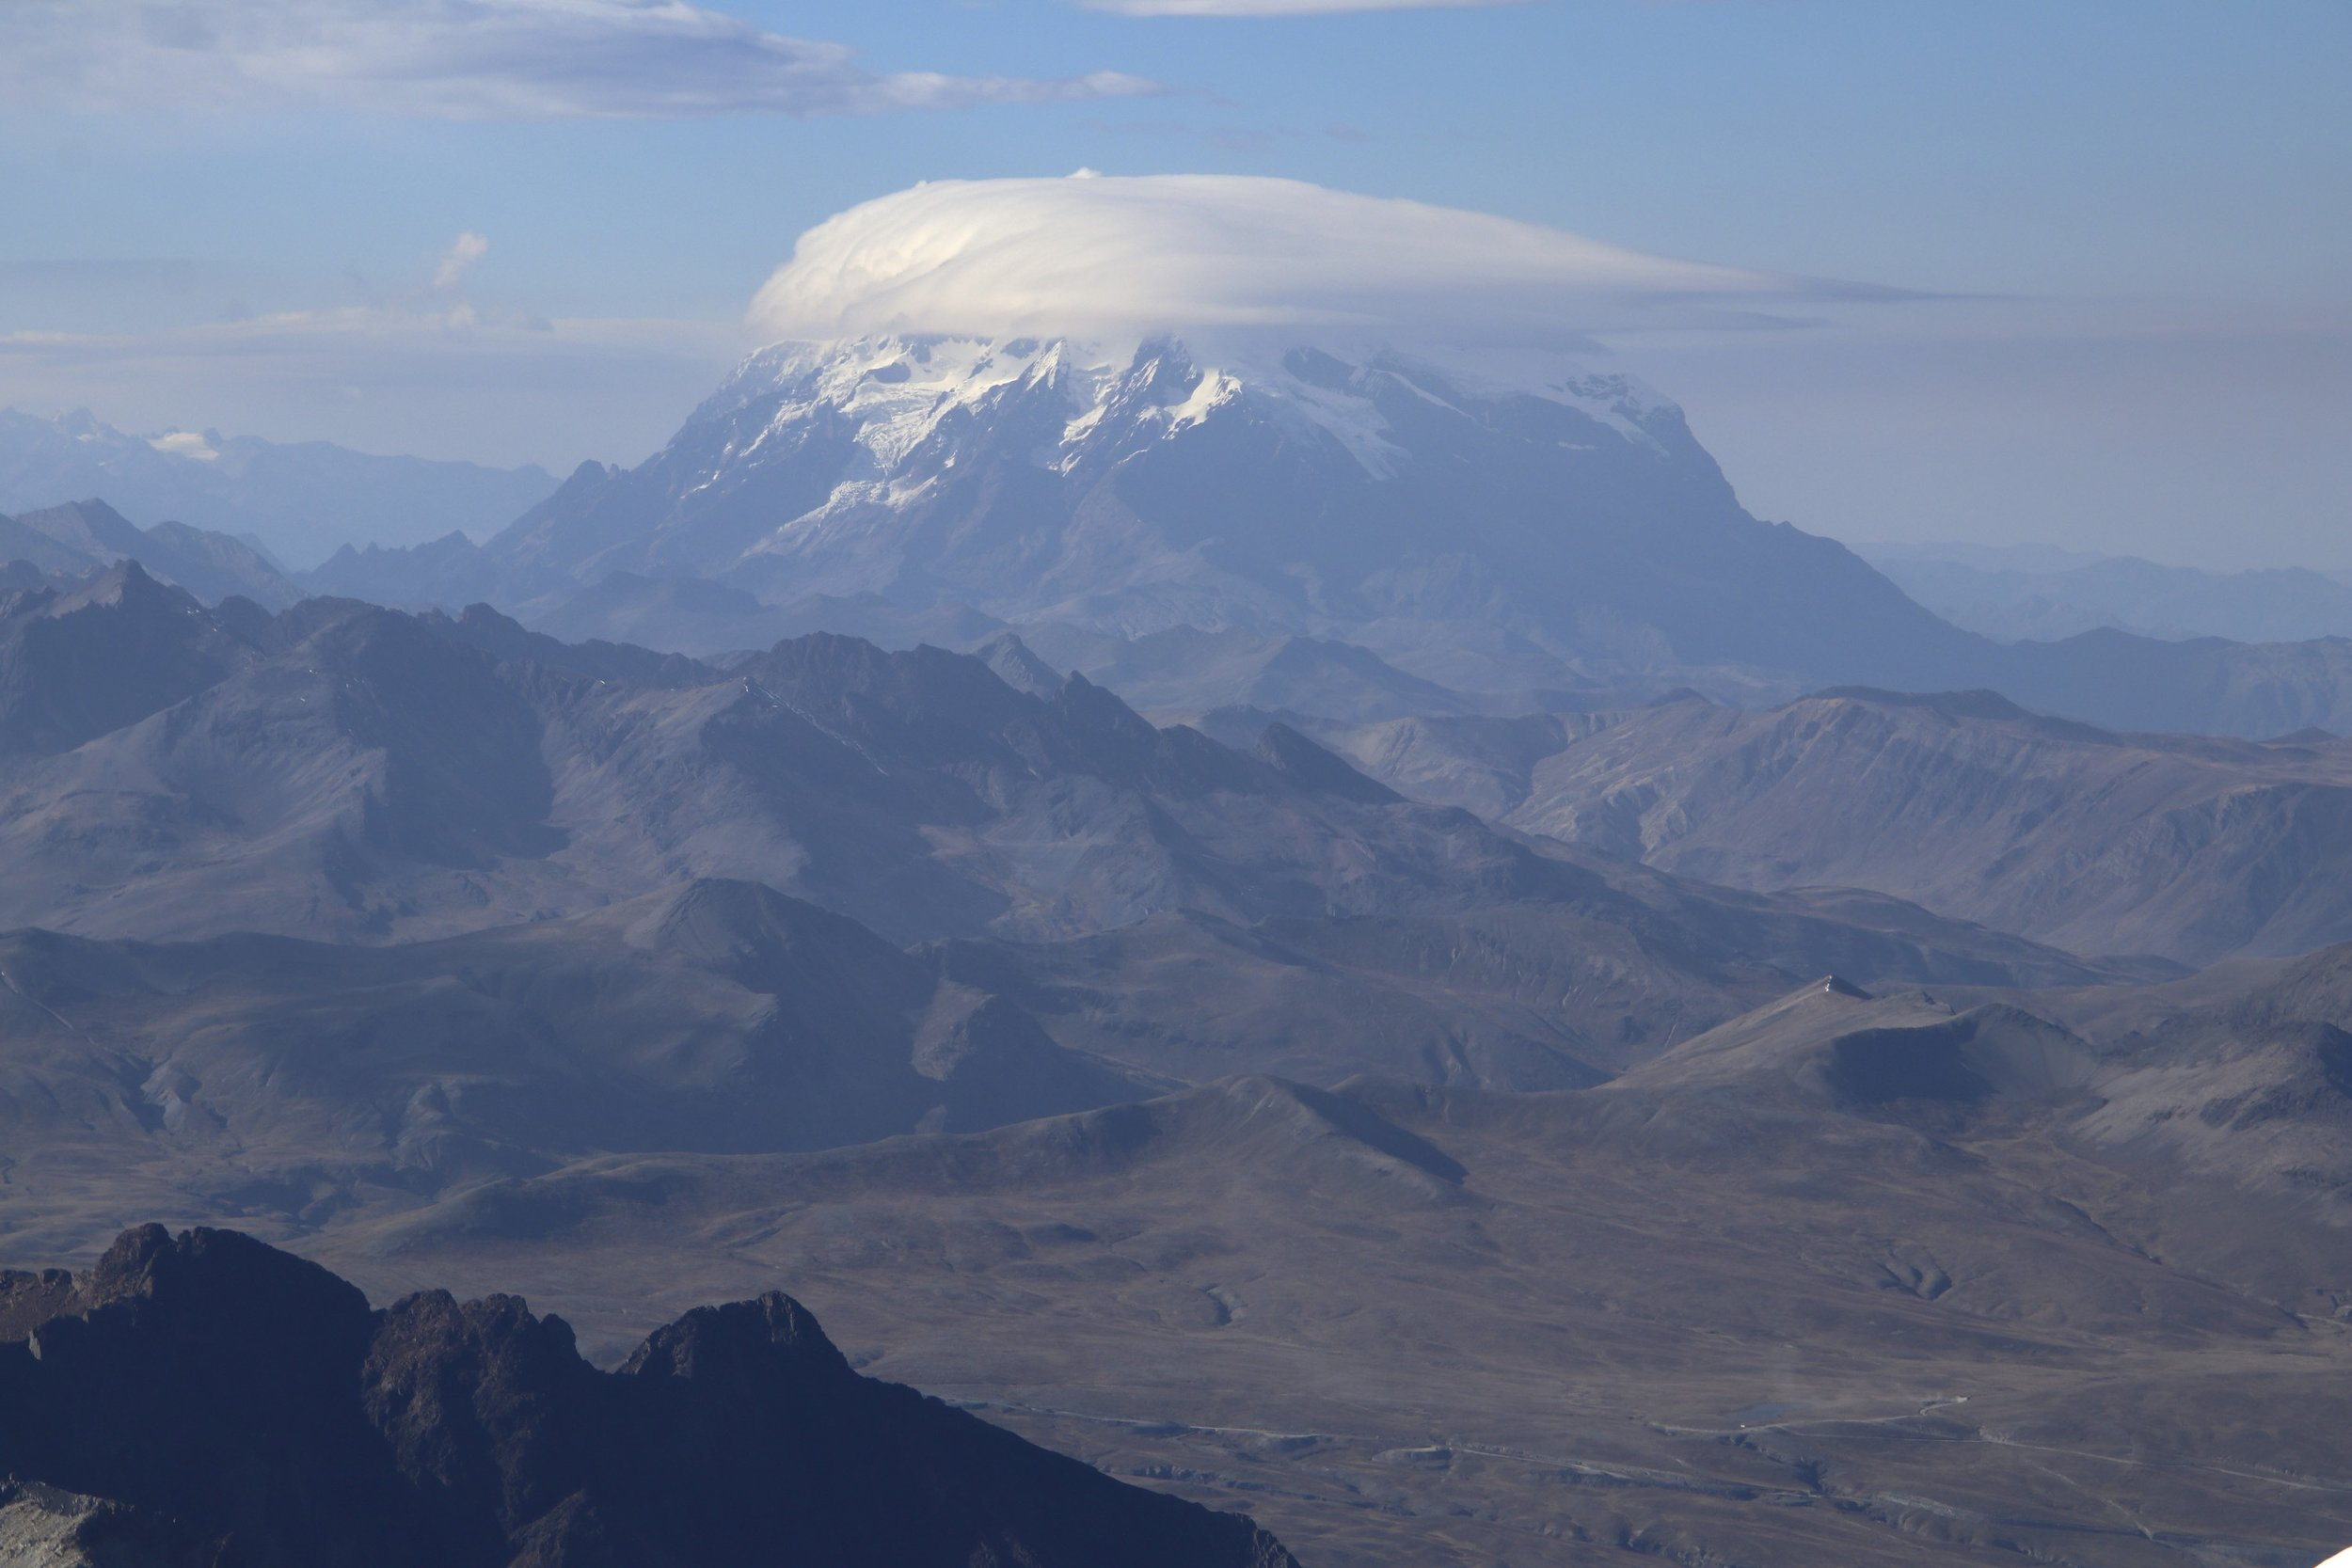 Illimani, the highest peak in the Royal Range.